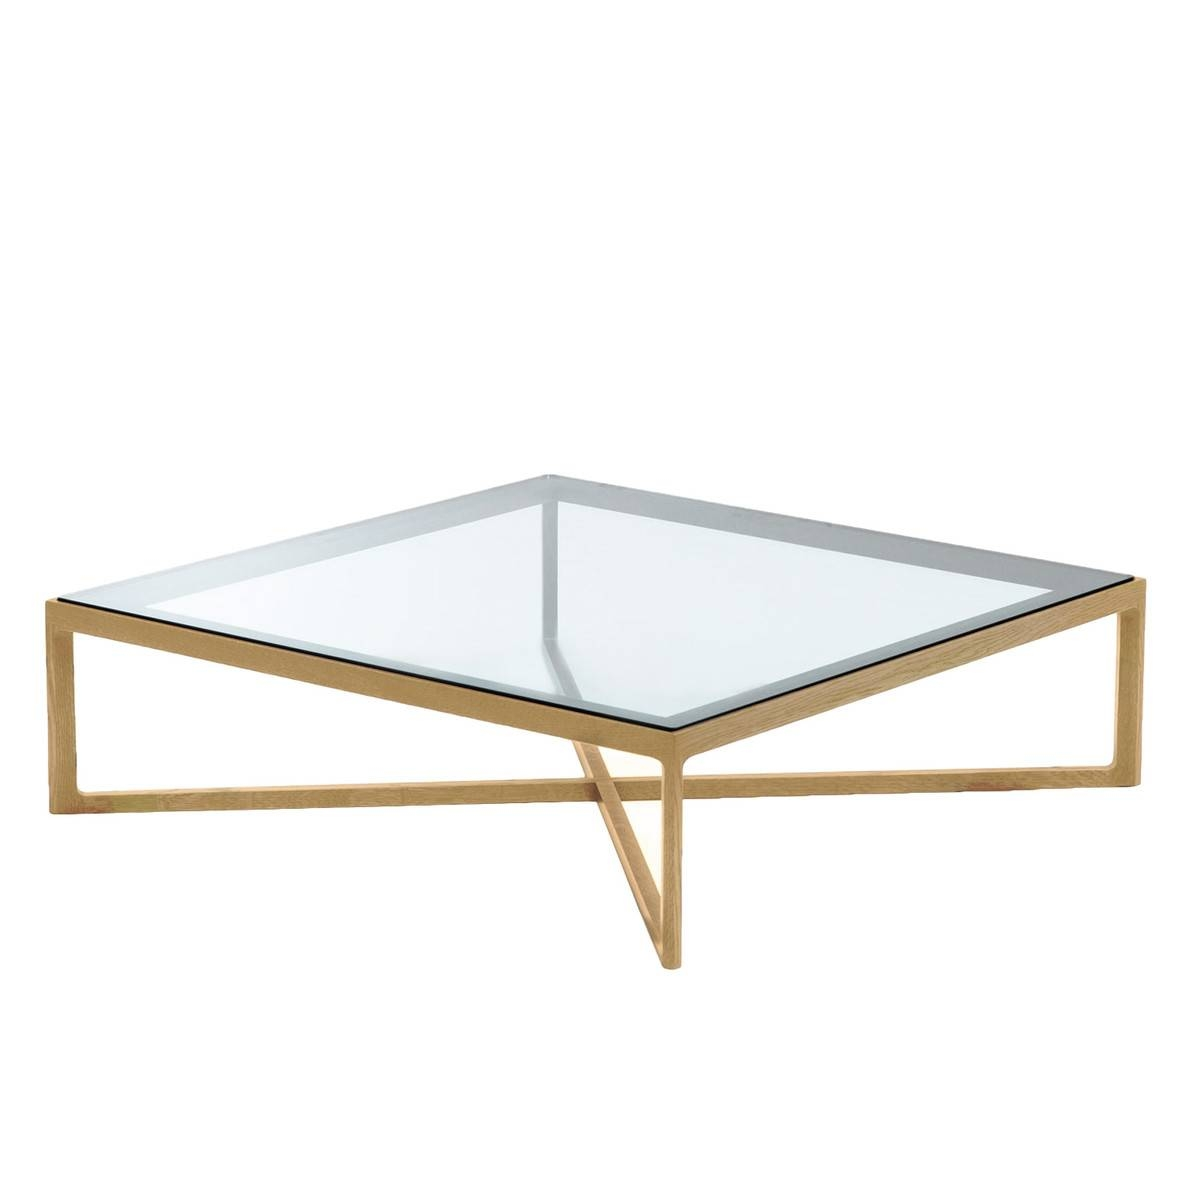 Marc Krusin Coffee Table | Knoll | Shop regarding Oak and Glass Coffee Tables (Image 21 of 30)